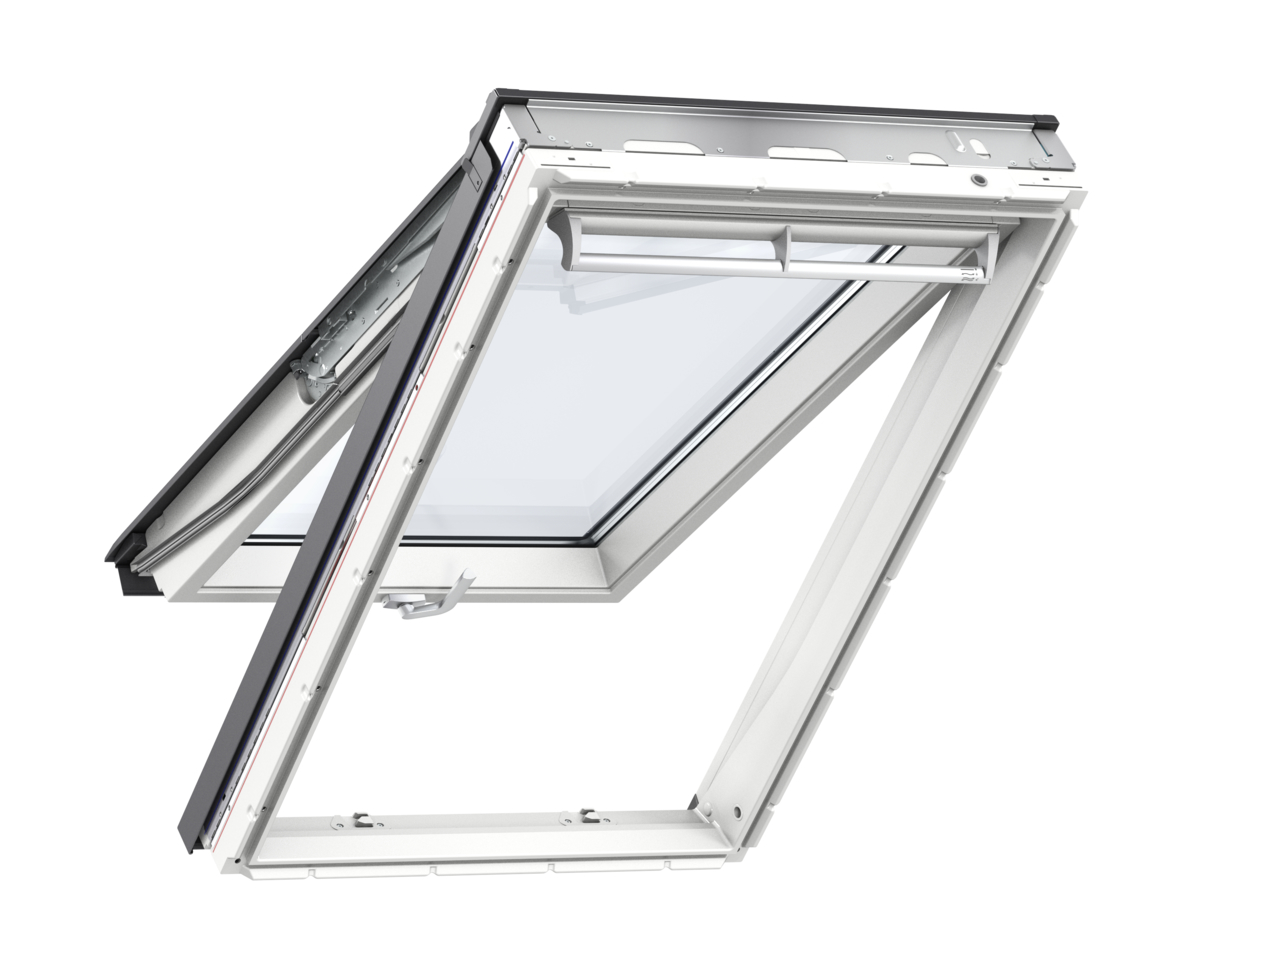 Velux GPU MK06 780 x 1180mm Top Hung 66Pane Roof Window - White Polyurethane